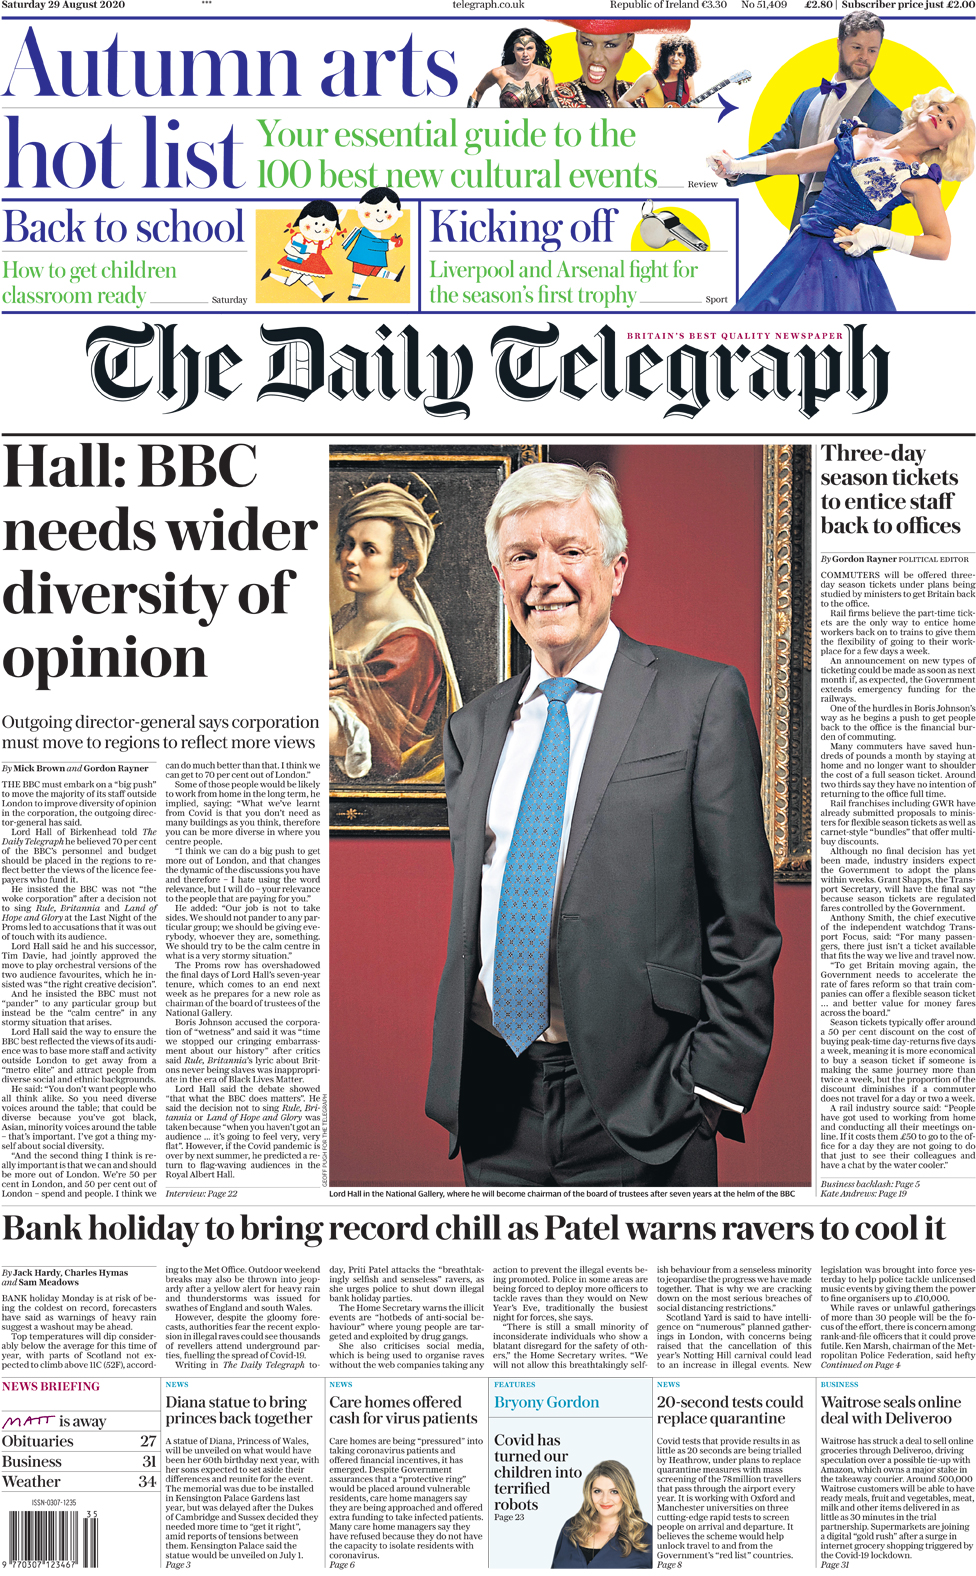 The Daily Telegraph front page 29 August 2020